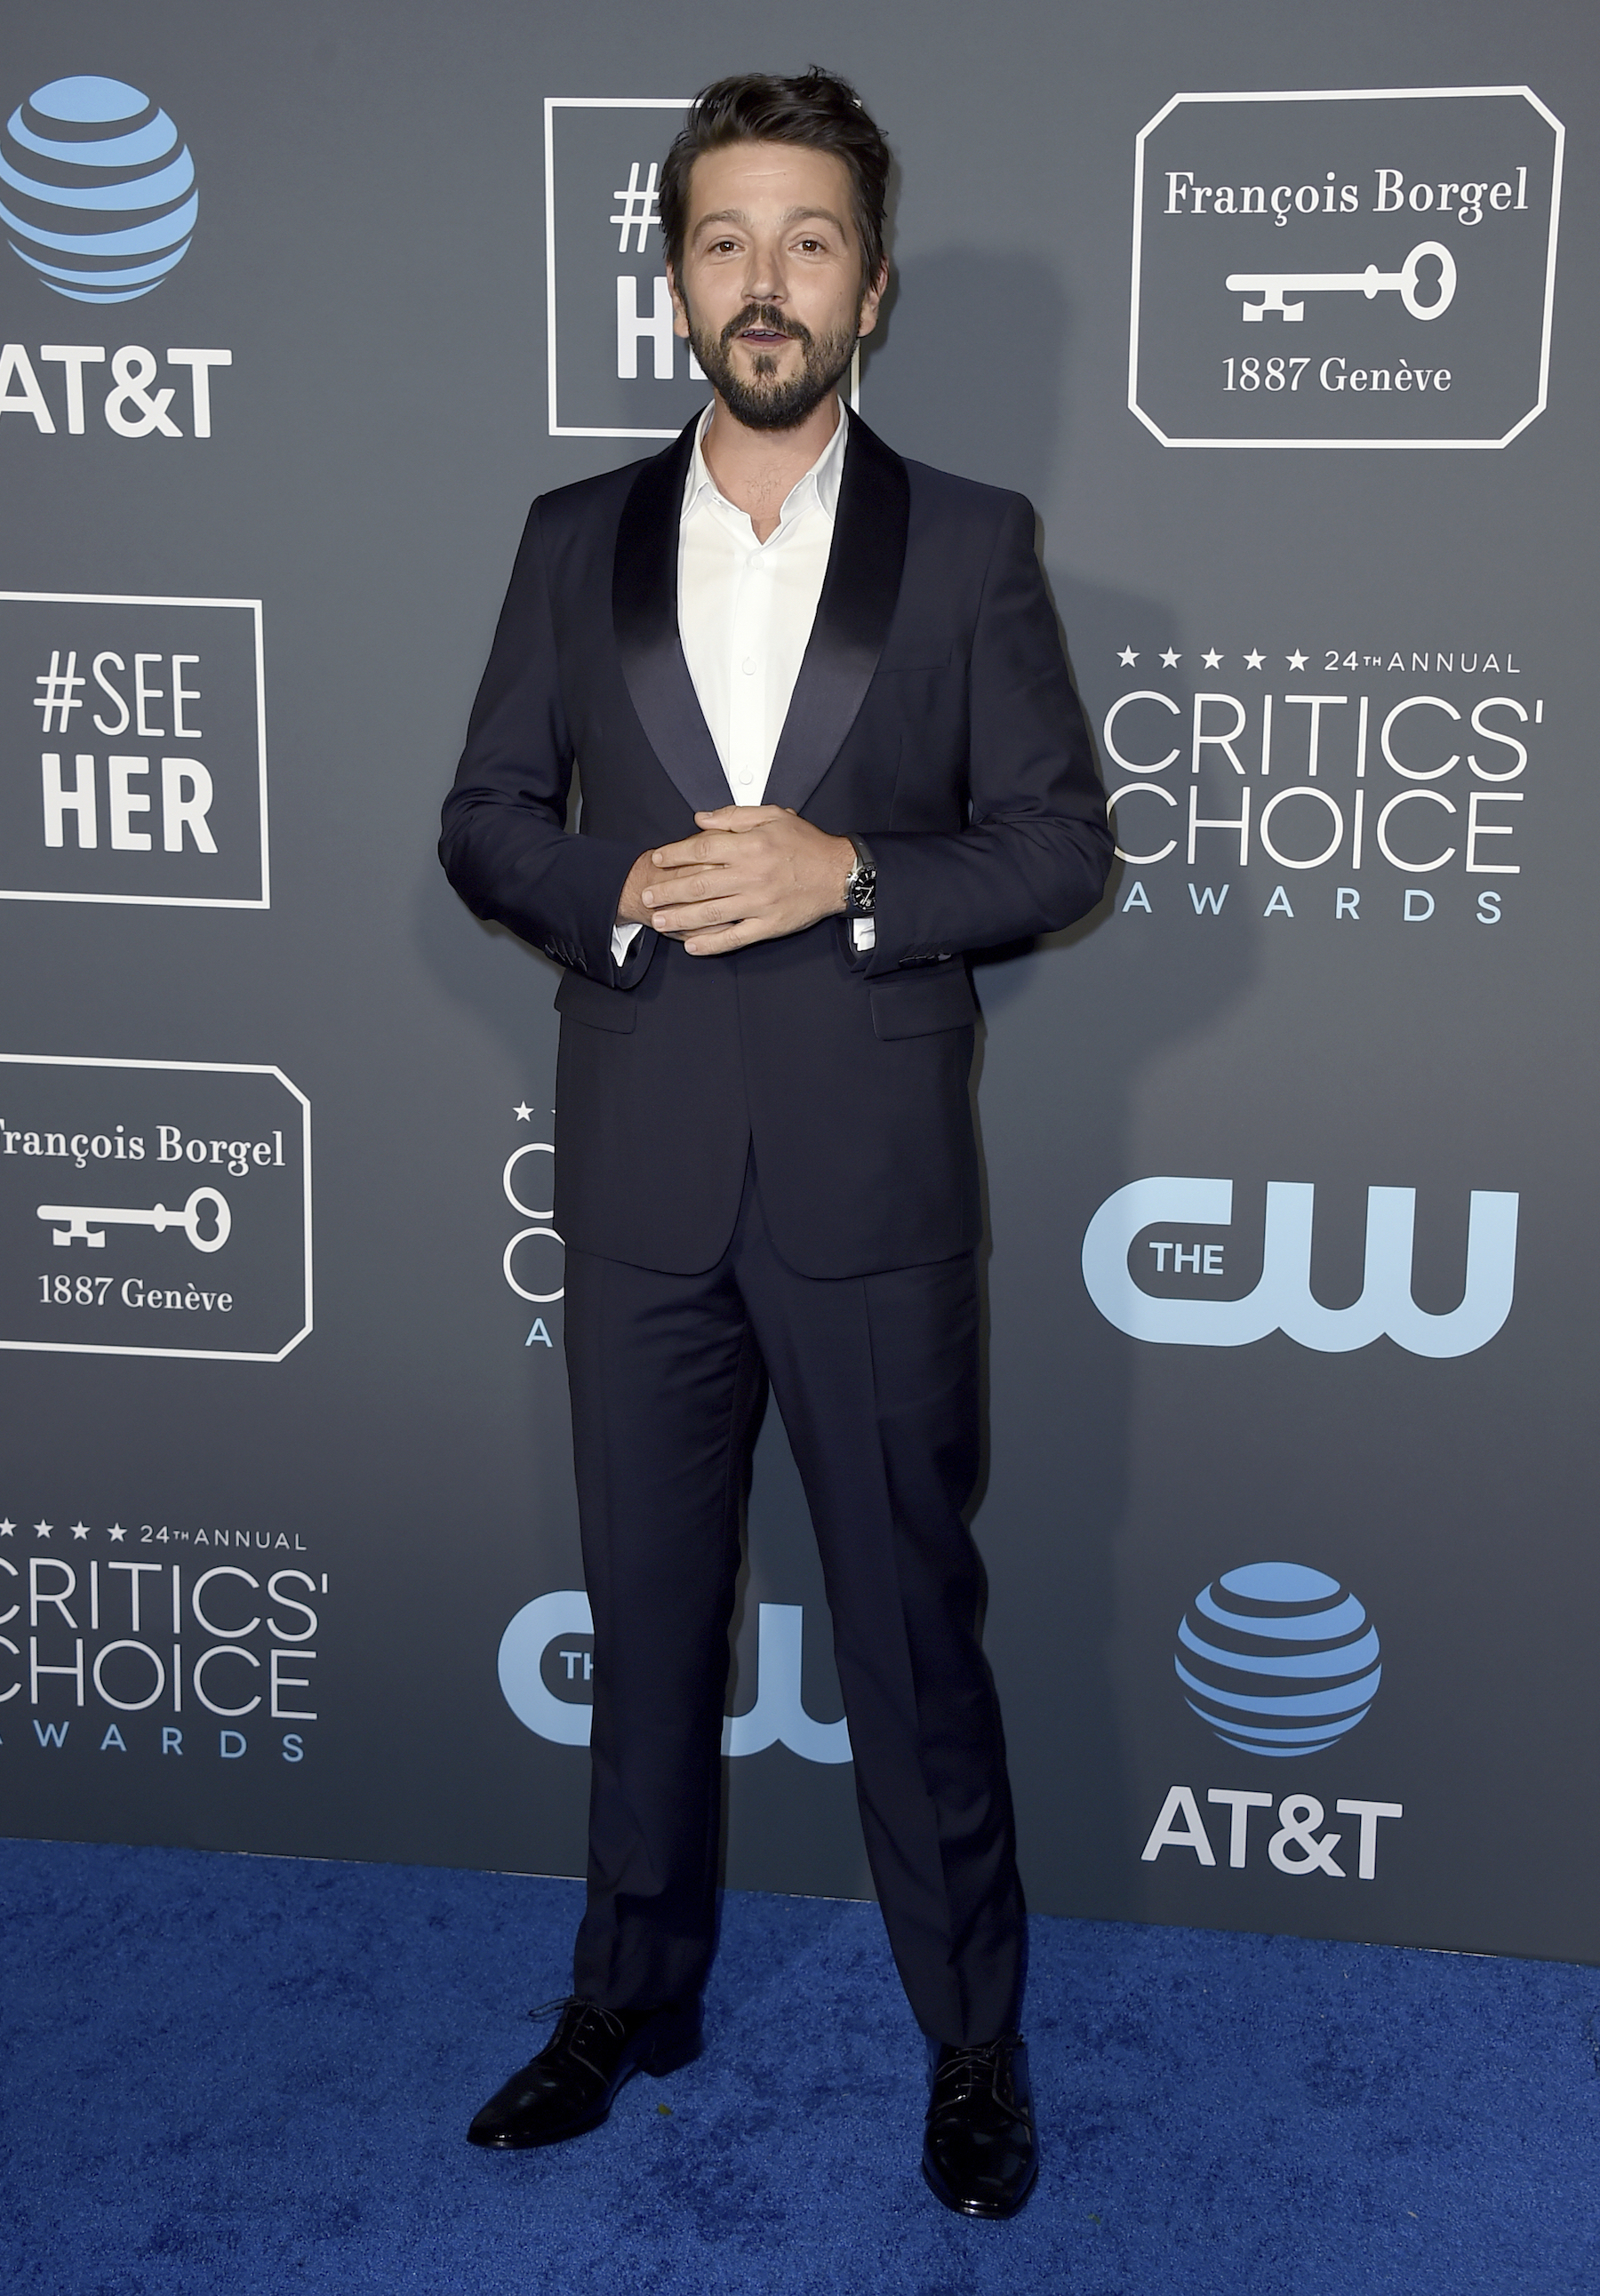 "<div class=""meta image-caption""><div class=""origin-logo origin-image ap""><span>AP</span></div><span class=""caption-text"">Diego Luna arrives at the 24th annual Critics' Choice Awards on Sunday, Jan. 13, 2019, at the Barker Hangar in Santa Monica, Calif. (Jordan Strauss/Invision/AP)</span></div>"